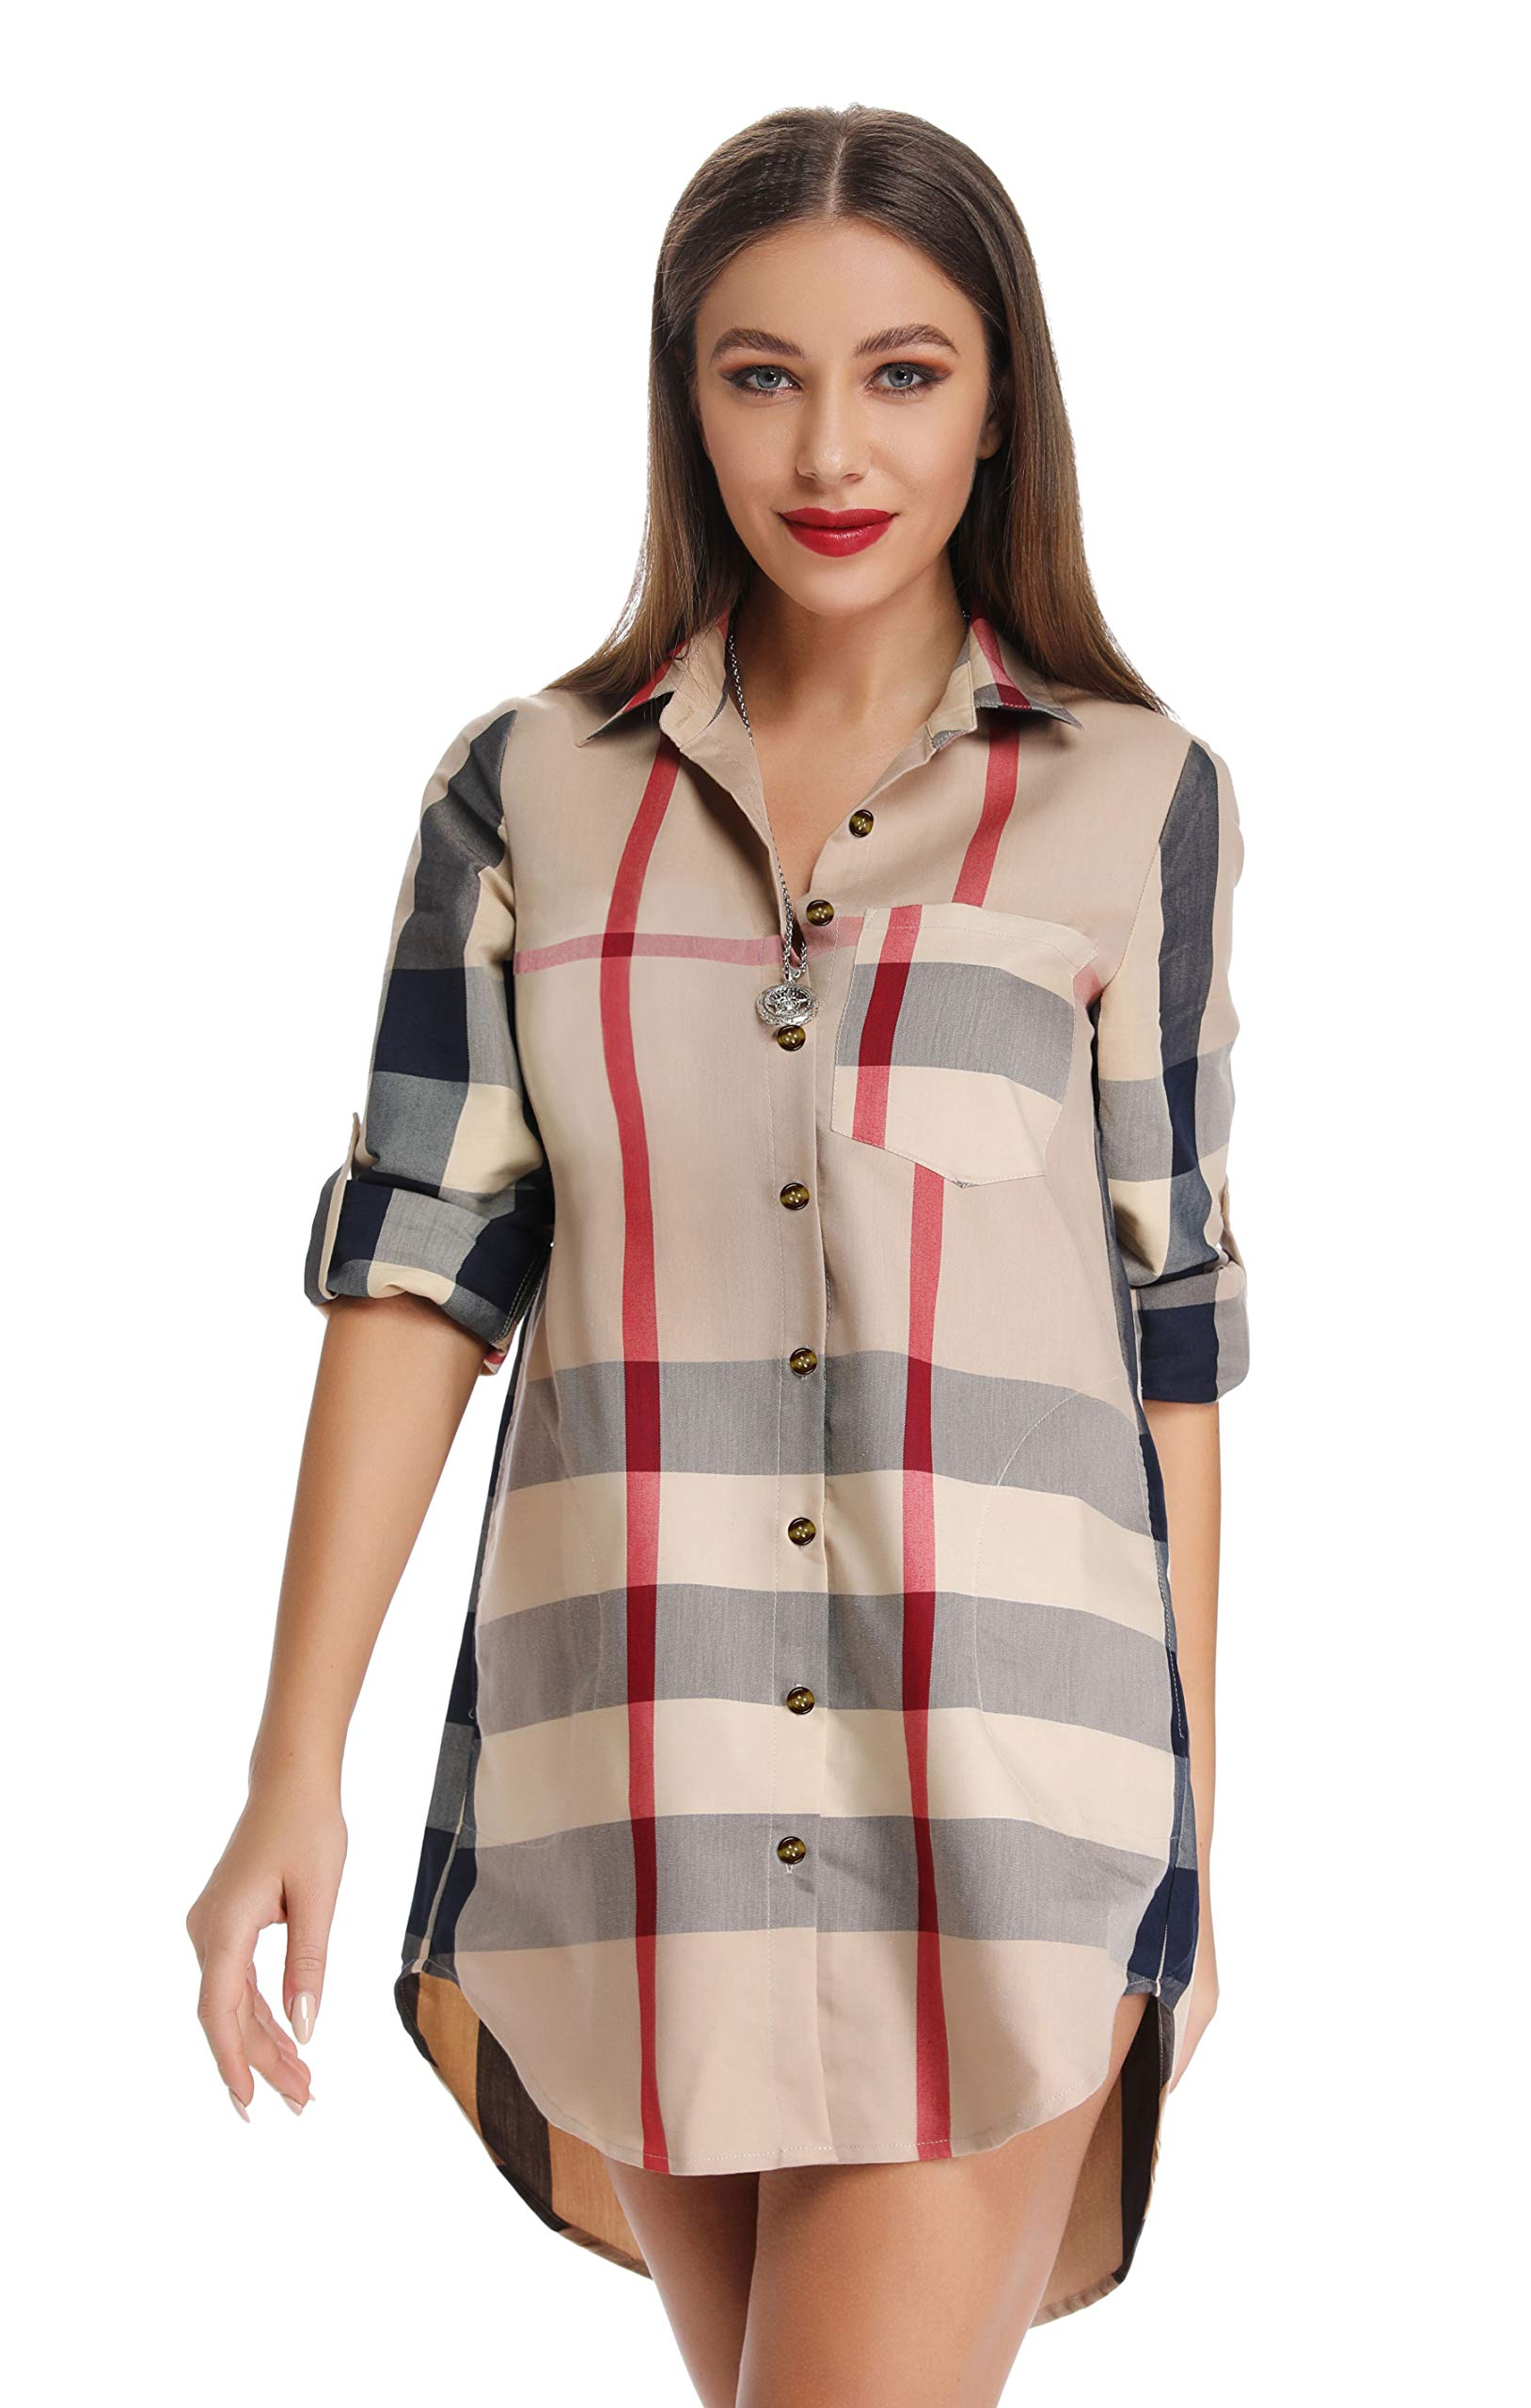 Shirt Dress - Women's Ruffle Oversize Casual Midi Dresses With Pockets